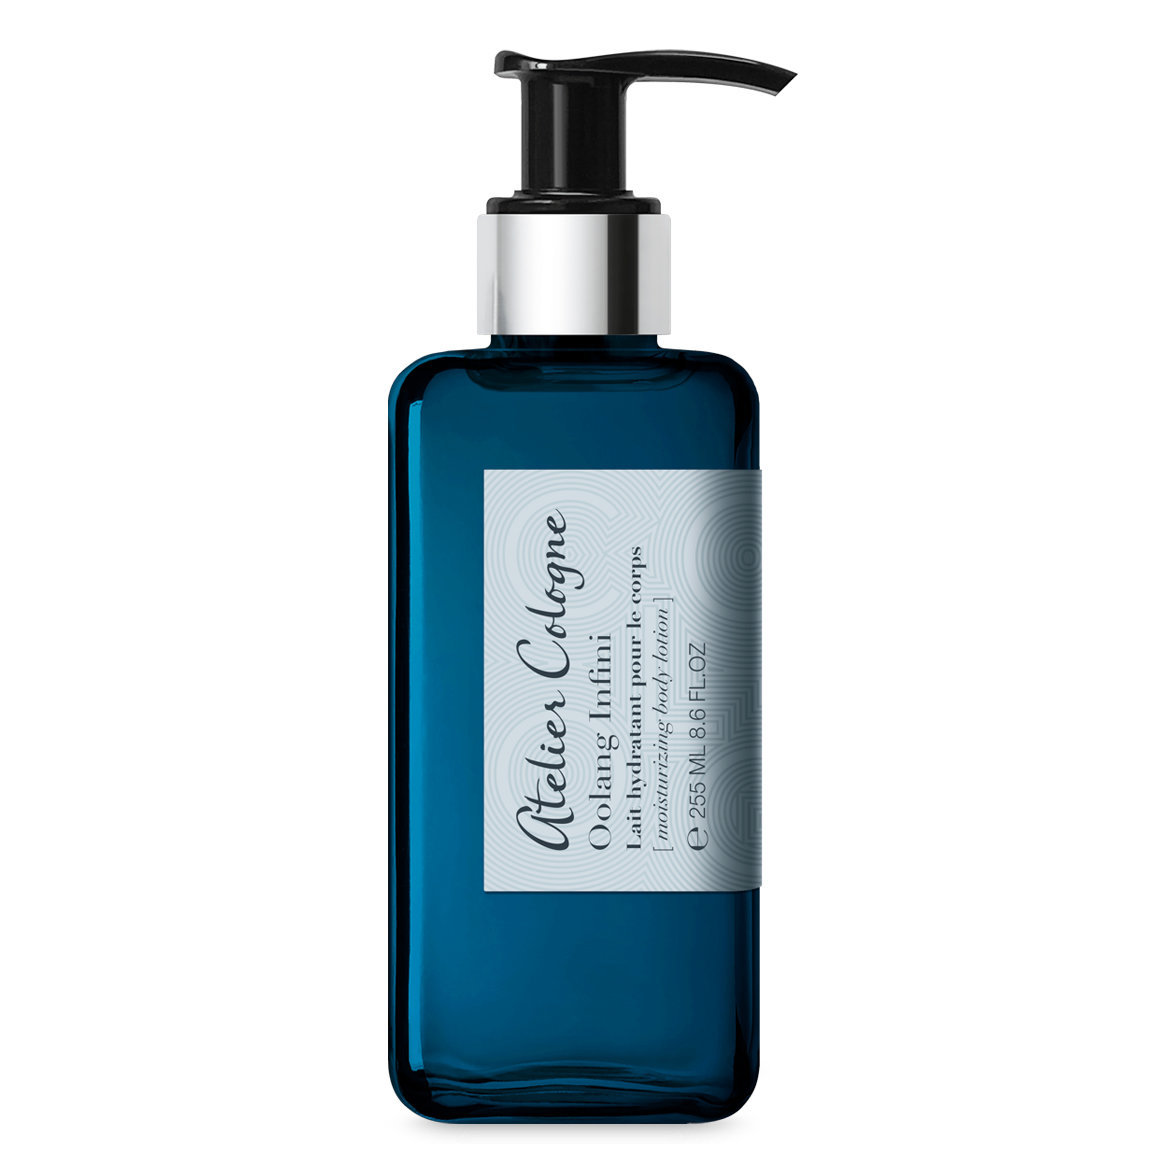 Atelier Cologne Oolang Infini Moisturizing Body Lotion alternative view 1 - product swatch.